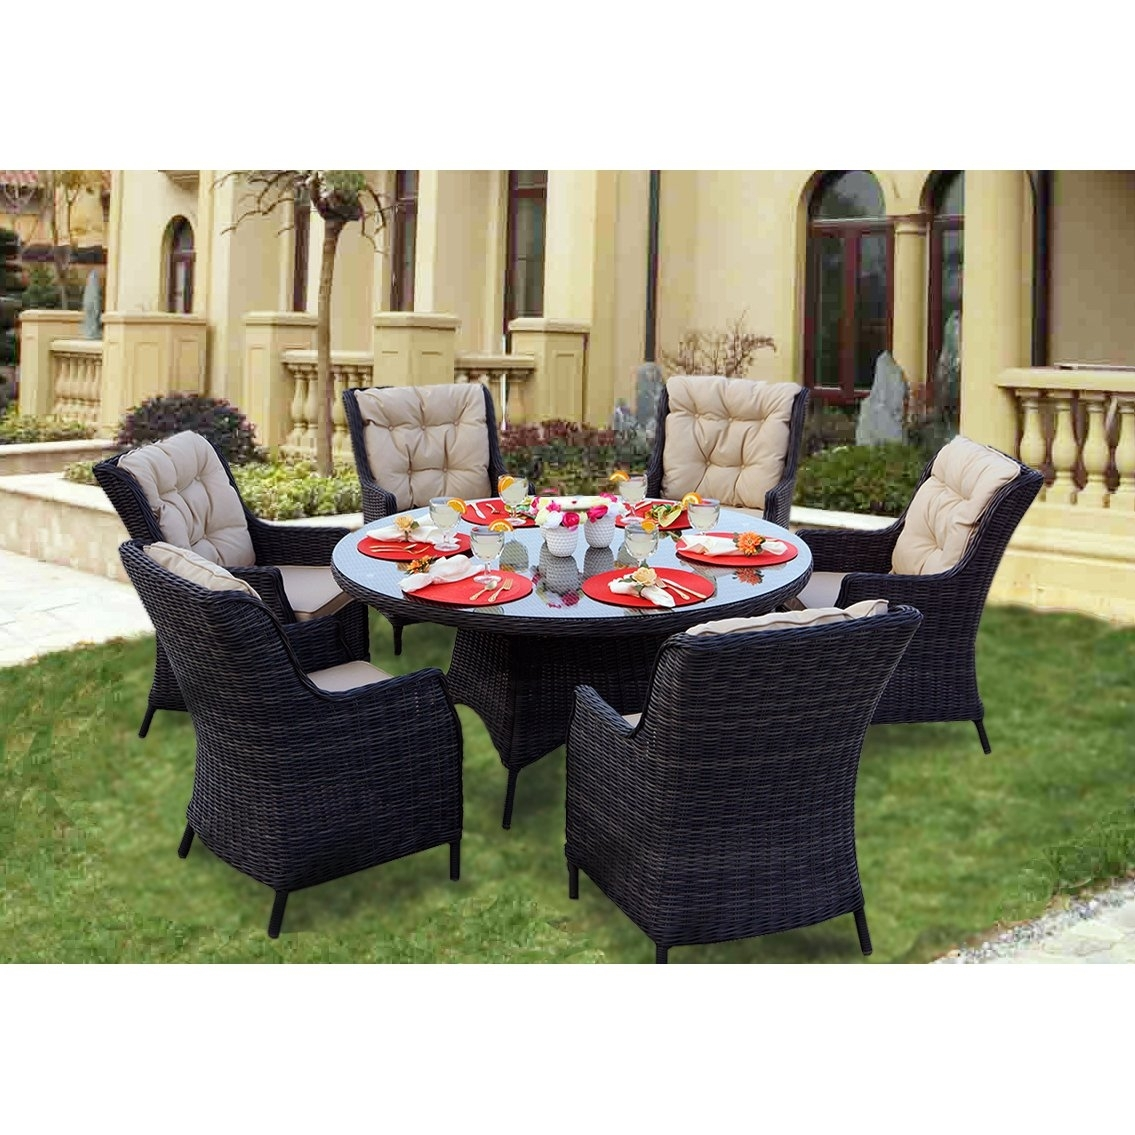 Shop Darlee Valencia Charcoal Wicker 7 Piece Dining Set With In 2017 Valencia 5 Piece 60 Inch Round Dining Sets (View 6 of 20)